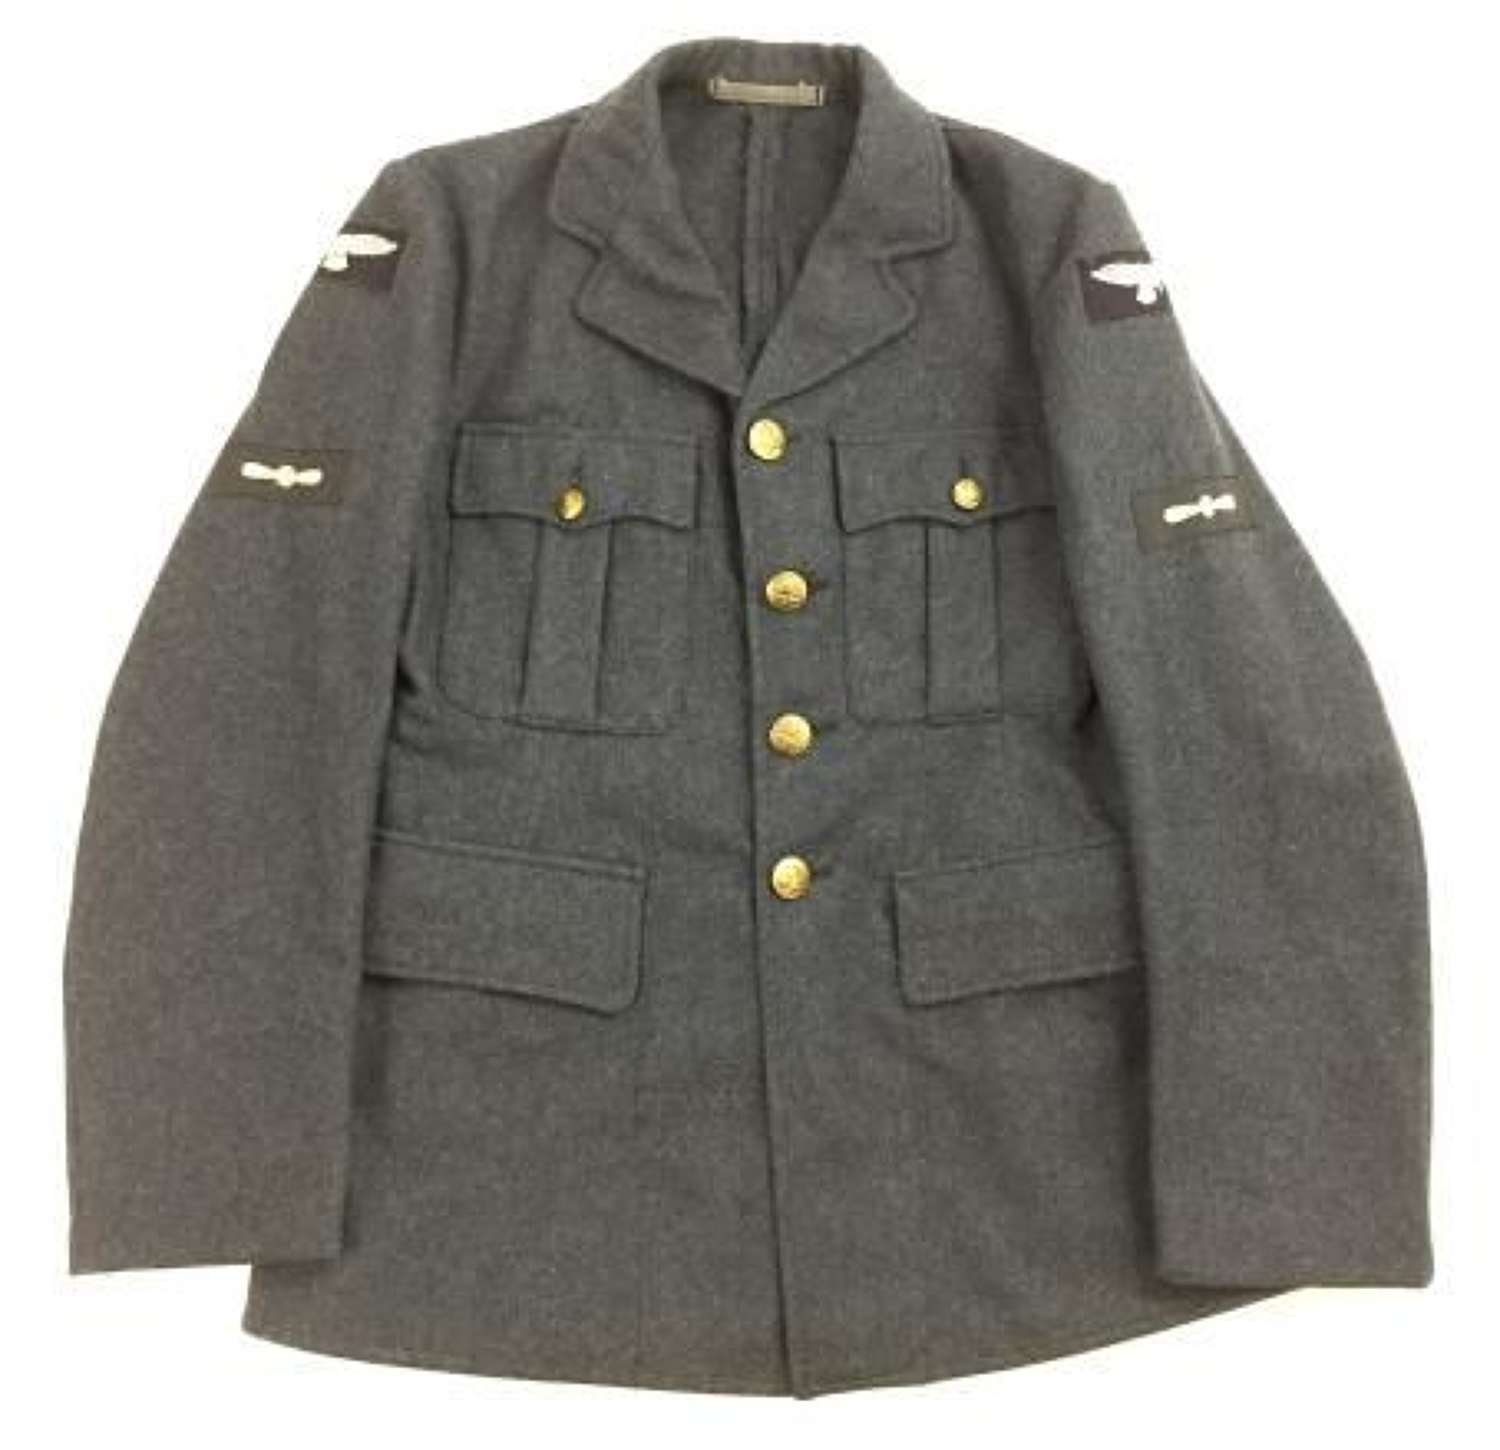 Orignal 1943 Dated RAF Ordinary Airmans Tunic - Size 6